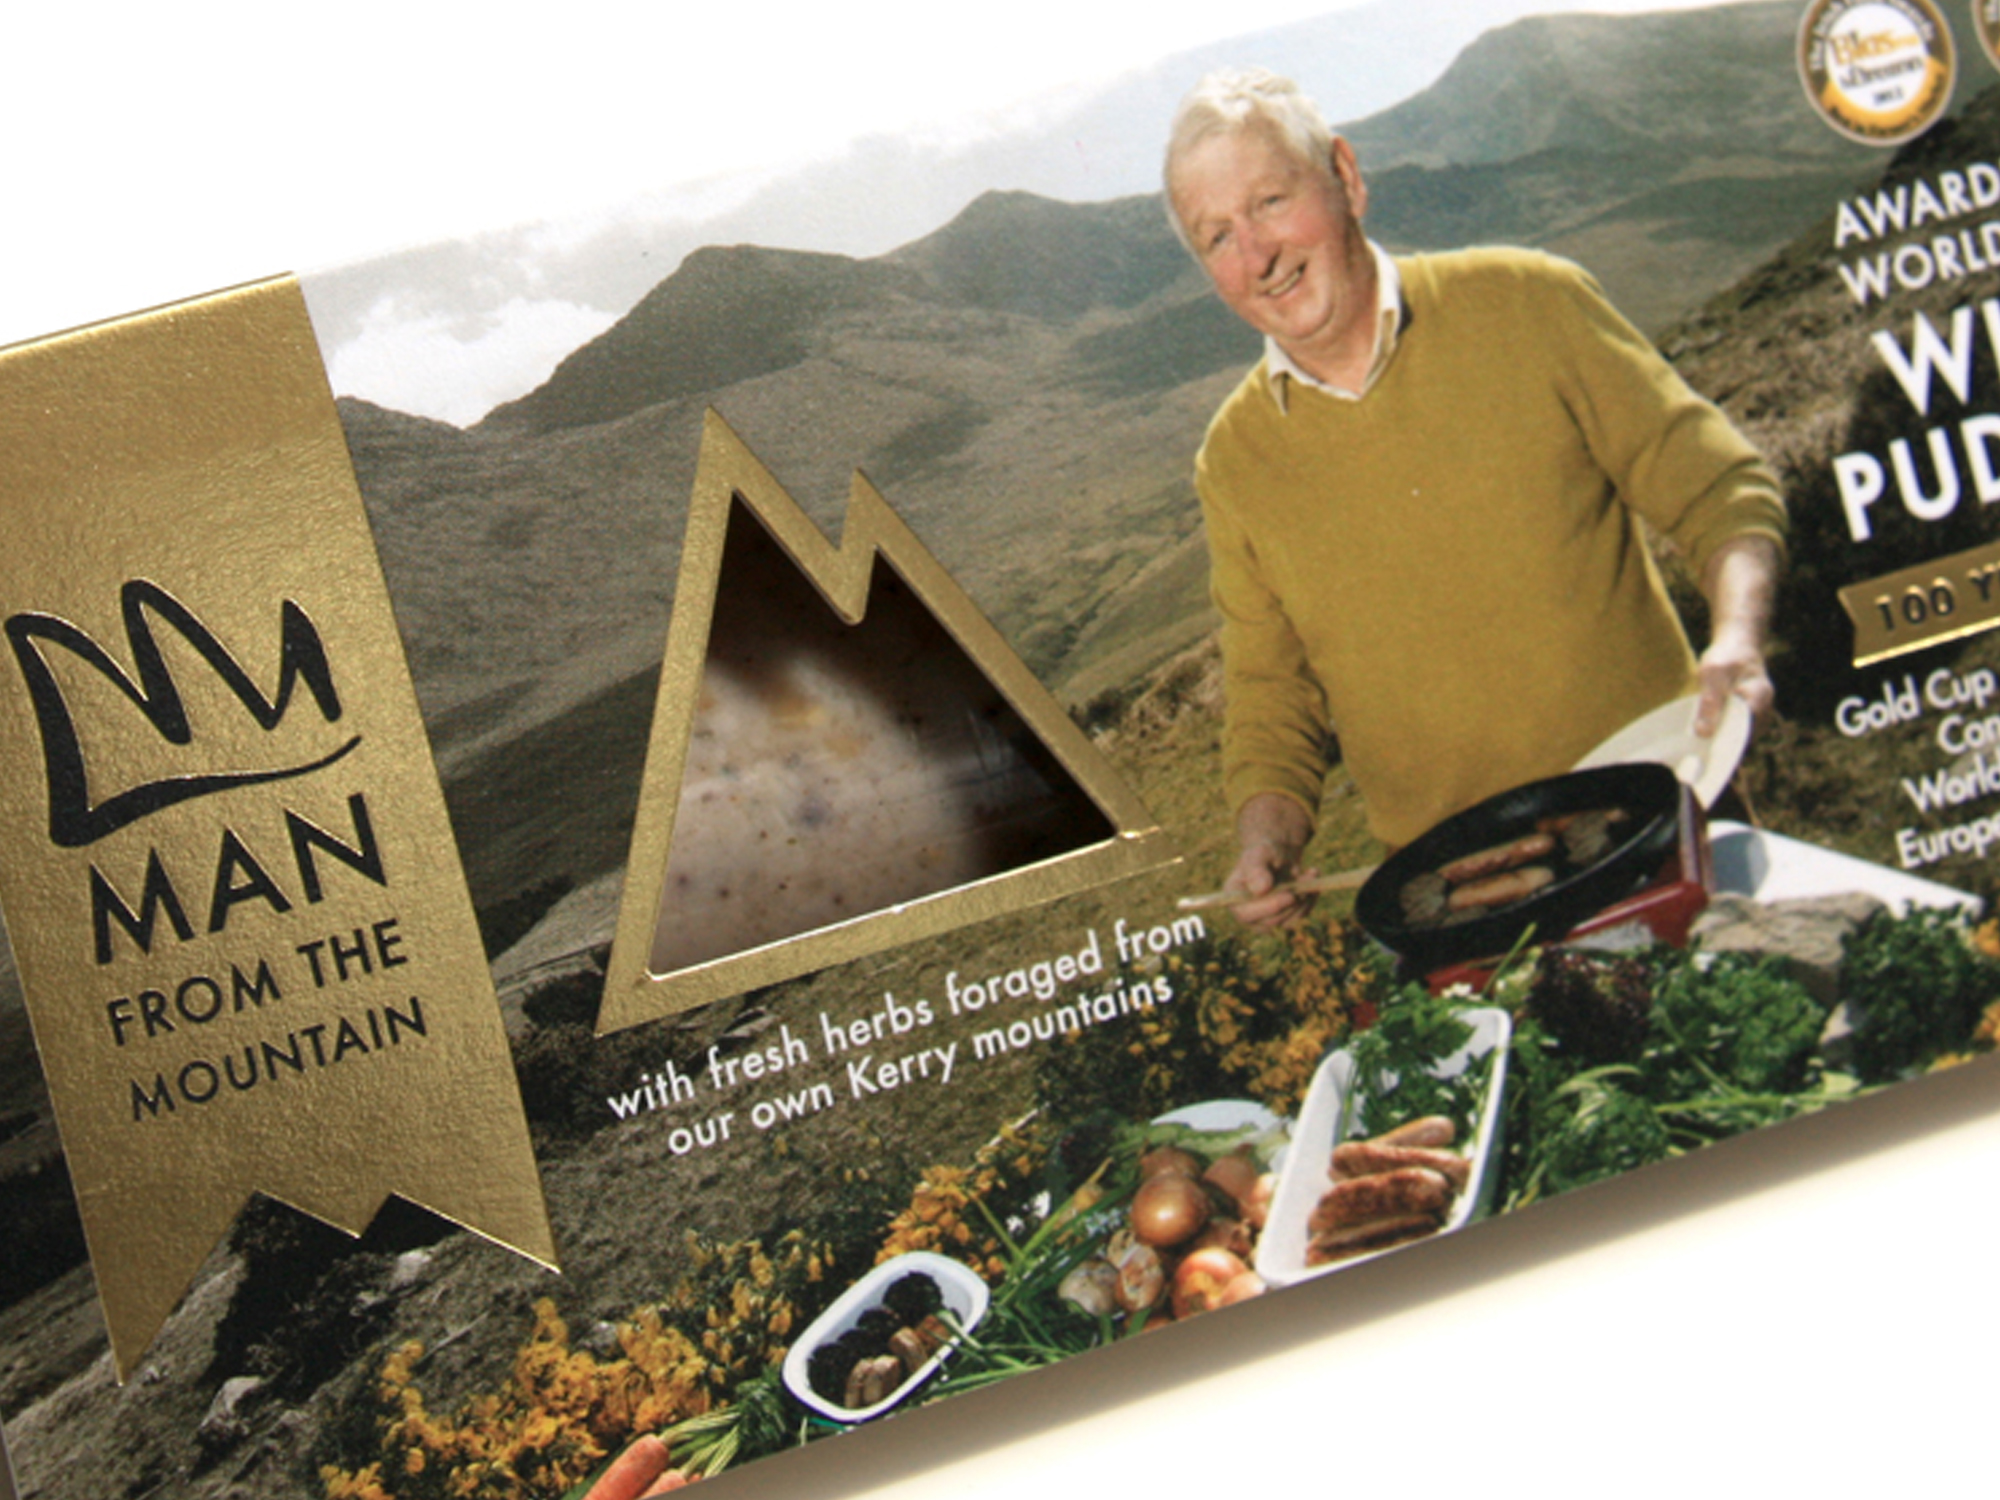 Cover image: Man from the Mountain